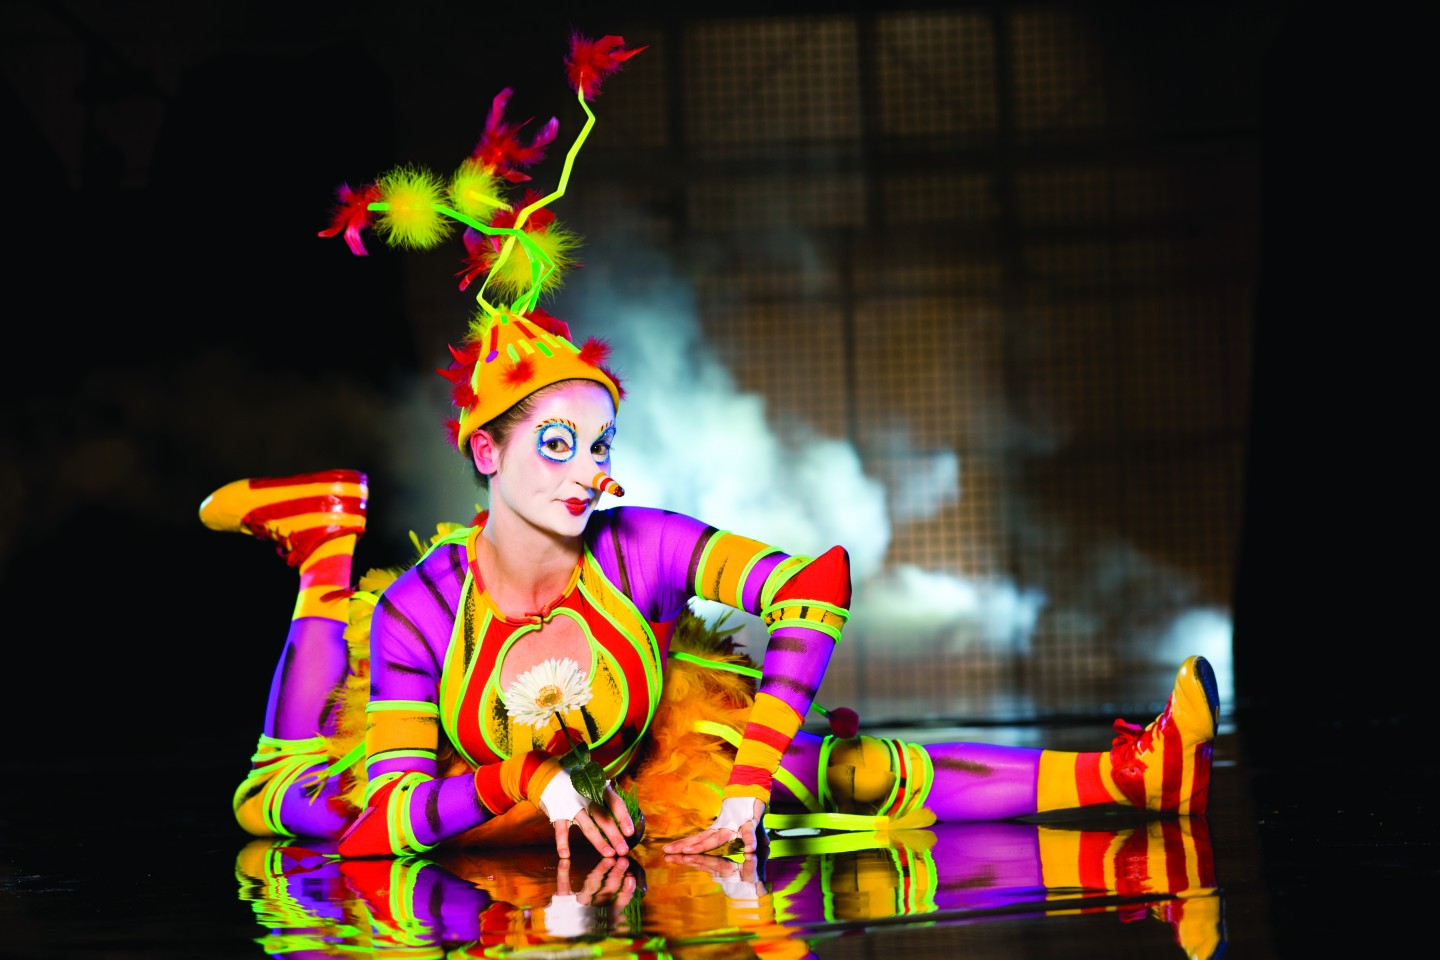 La Nouba Cirque de Soleil Orlando Review | Guest Post By Mr. U